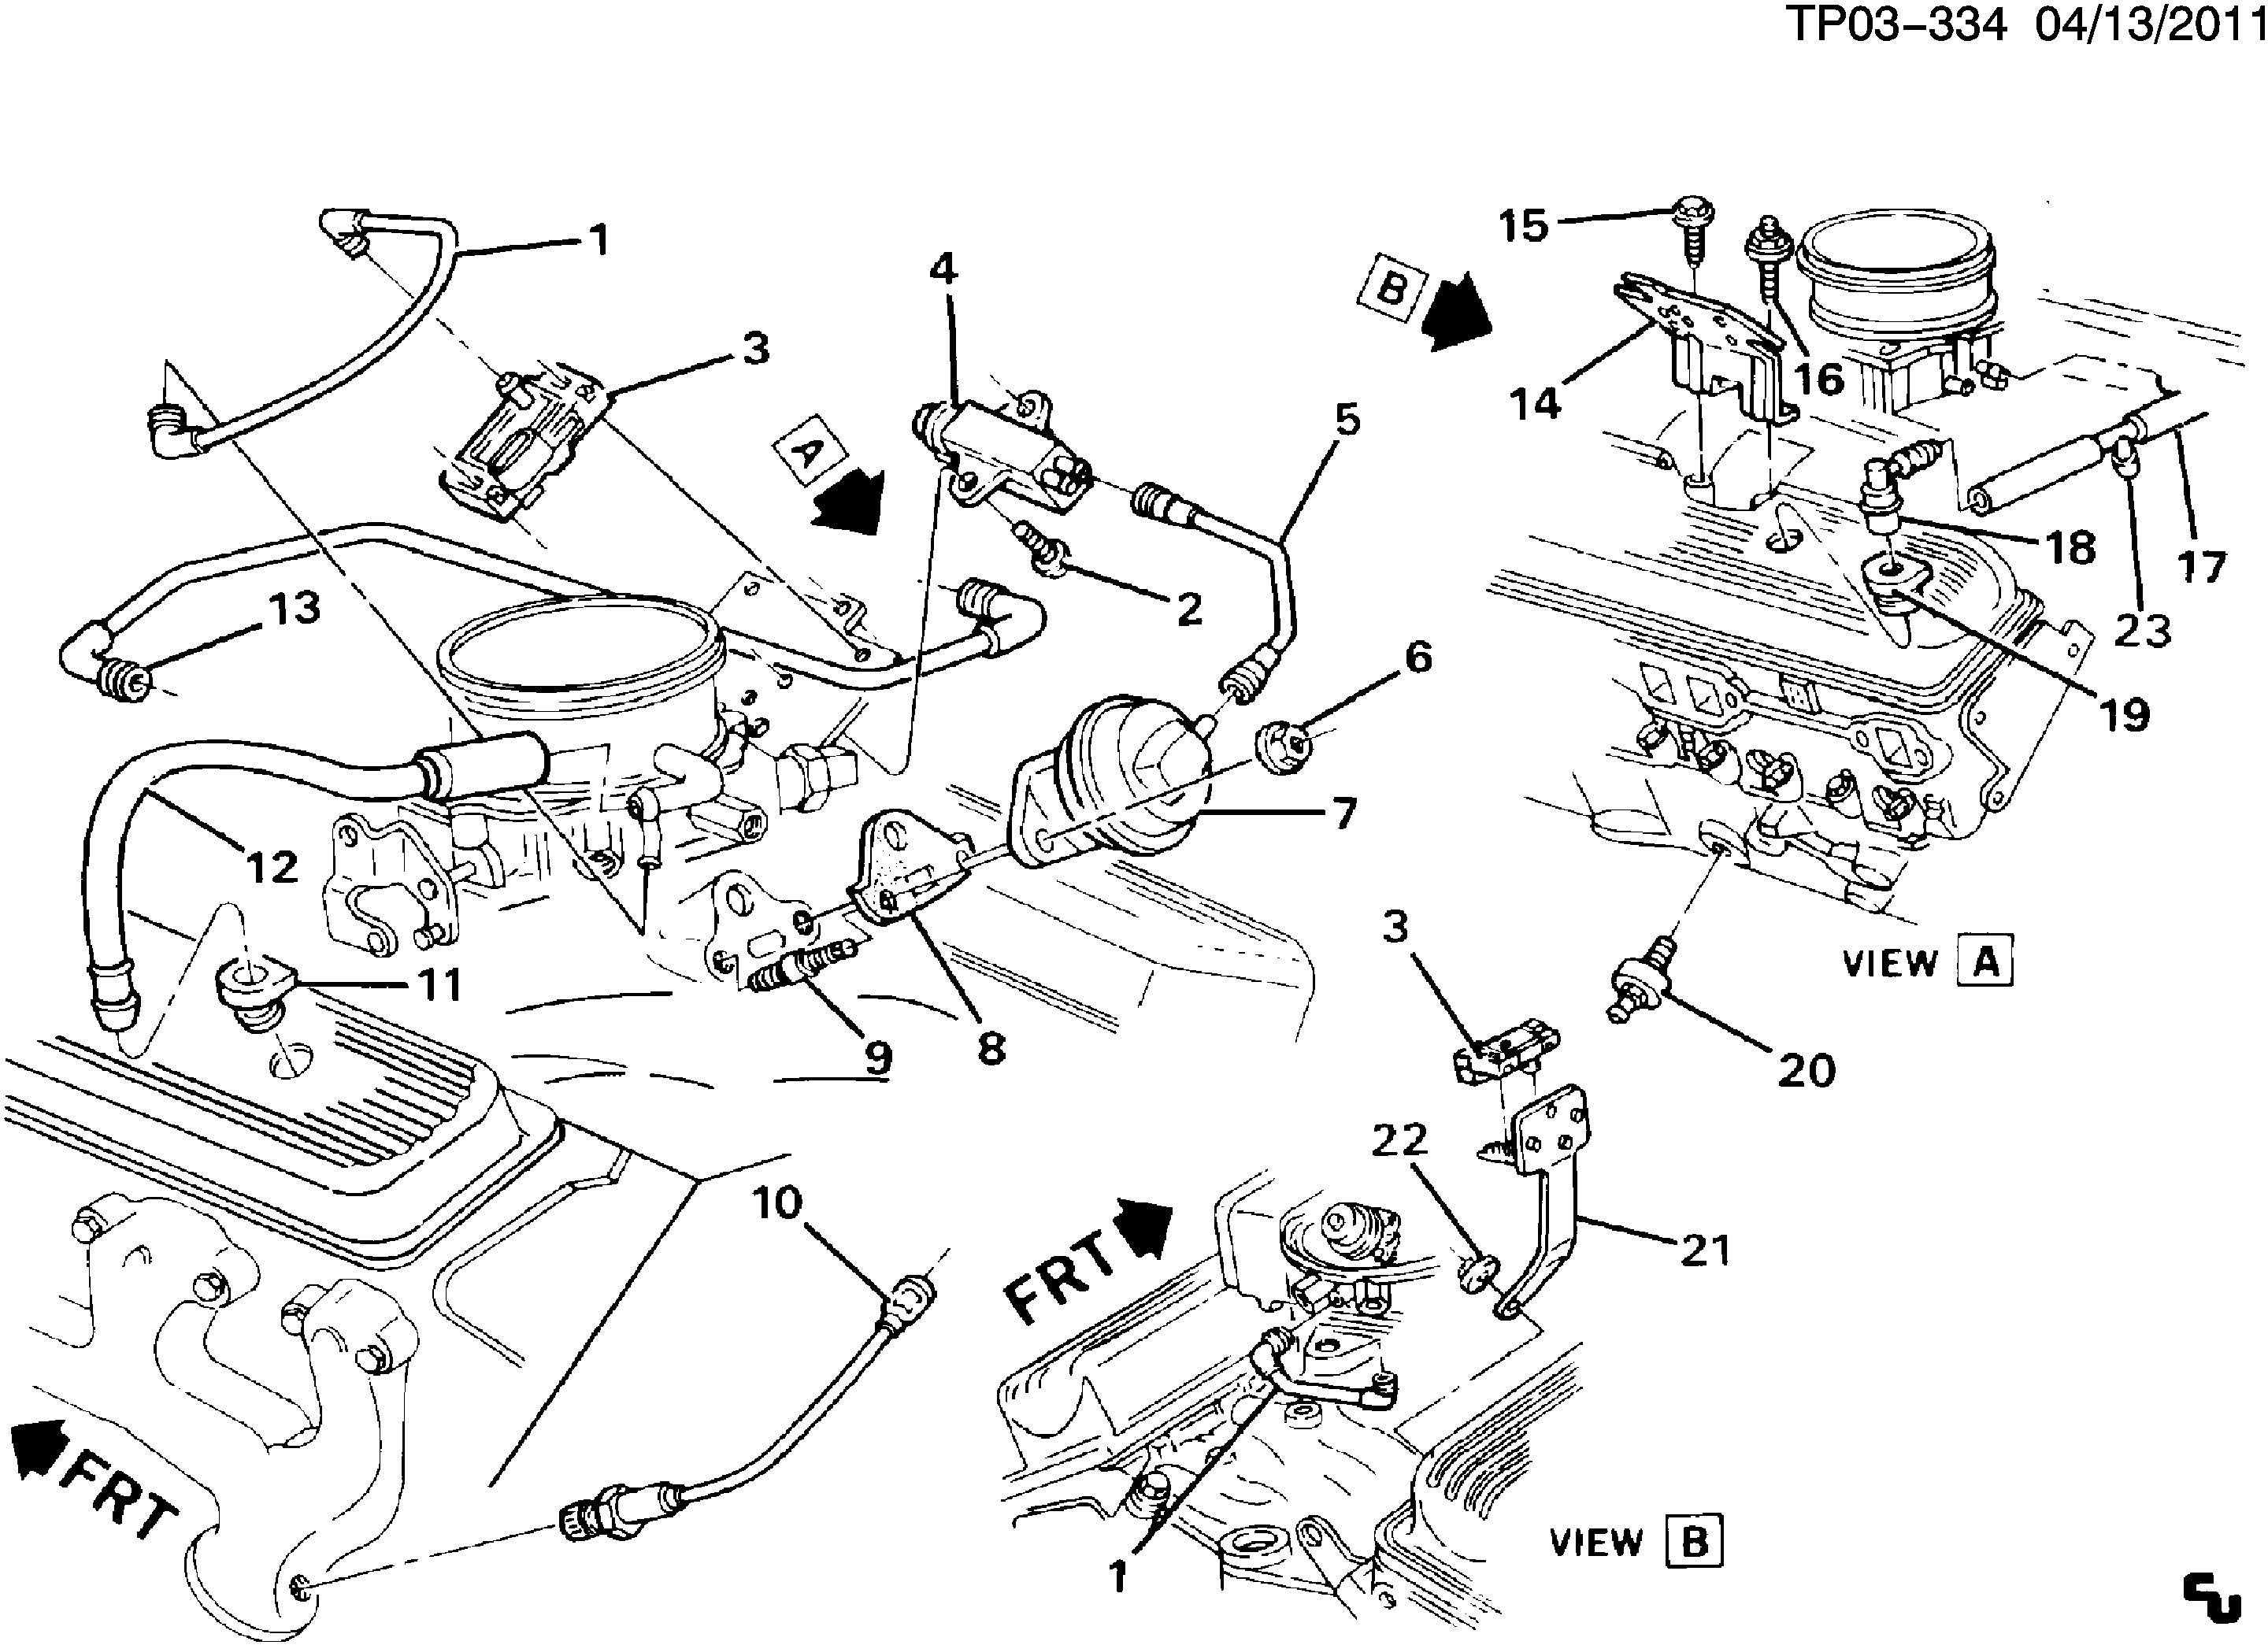 1990 Chevy 350 Engine Diagram - Wiring Diagram General